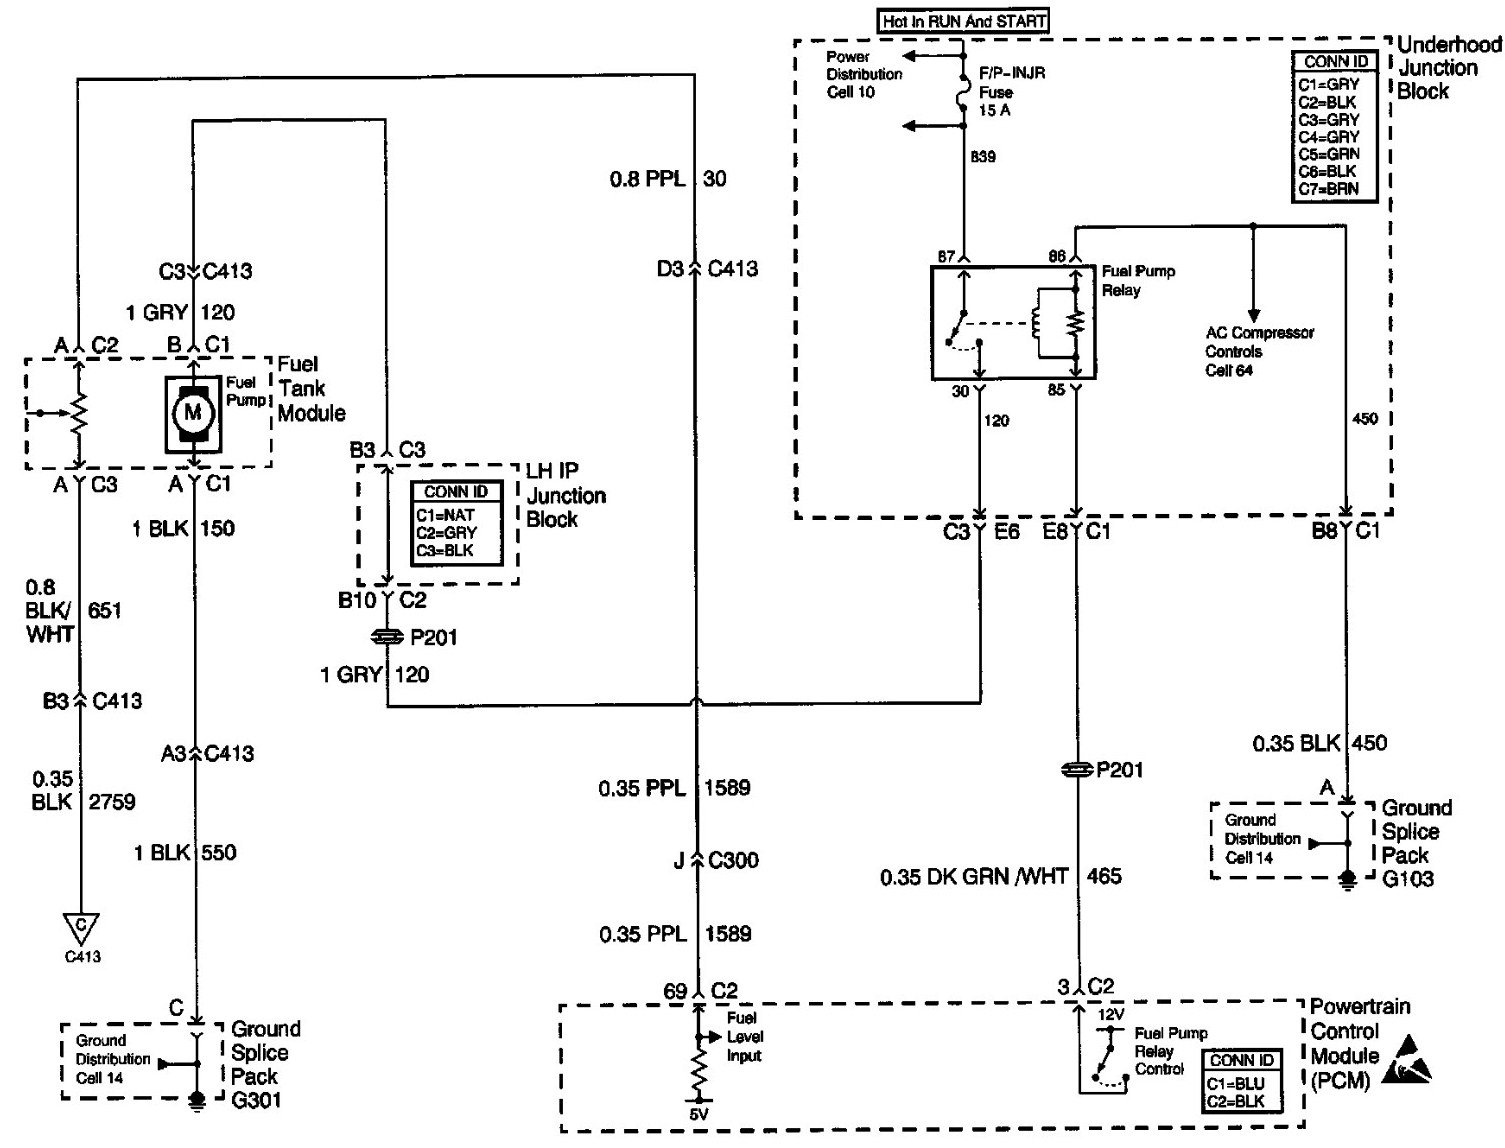 Fuel Diagram For 2001 Great Design Of Wiring 2005 Kia Spectra Engine 2000 Grand Am Pump Free 2016 Nissan Altima